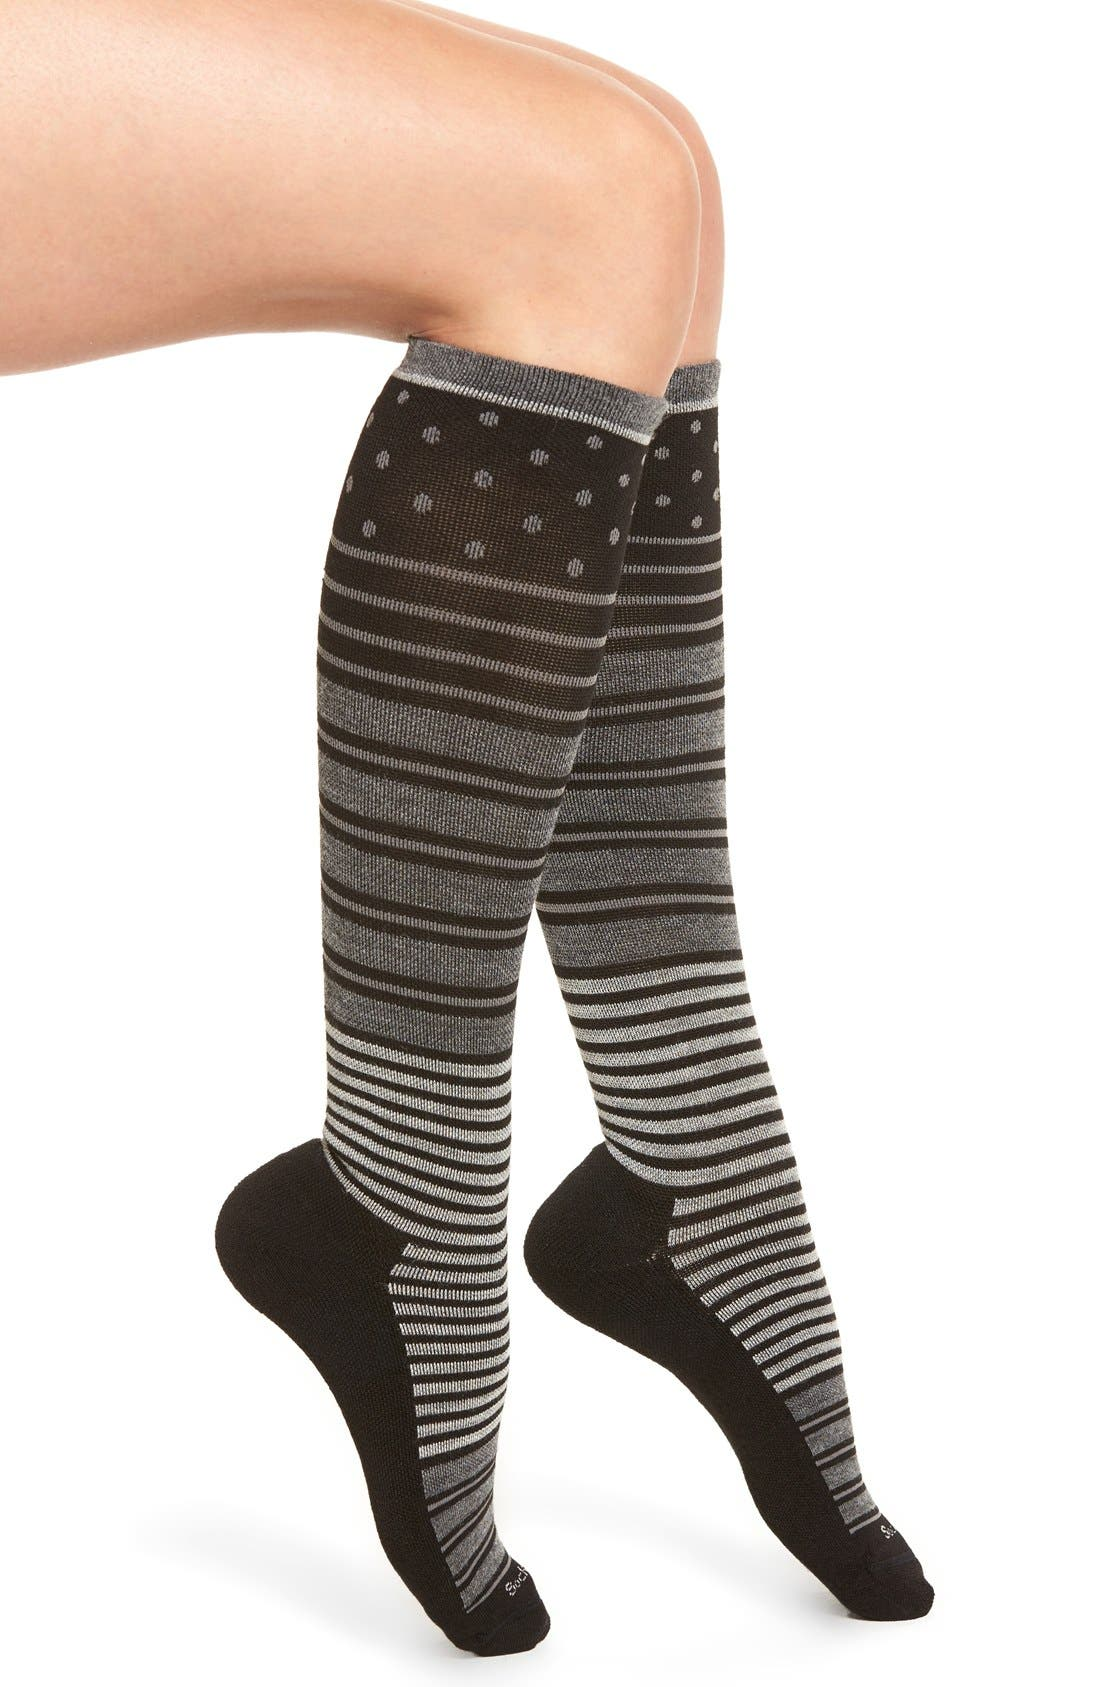 Sockwell 'Twister' Merino Wool Blend Compression Socks